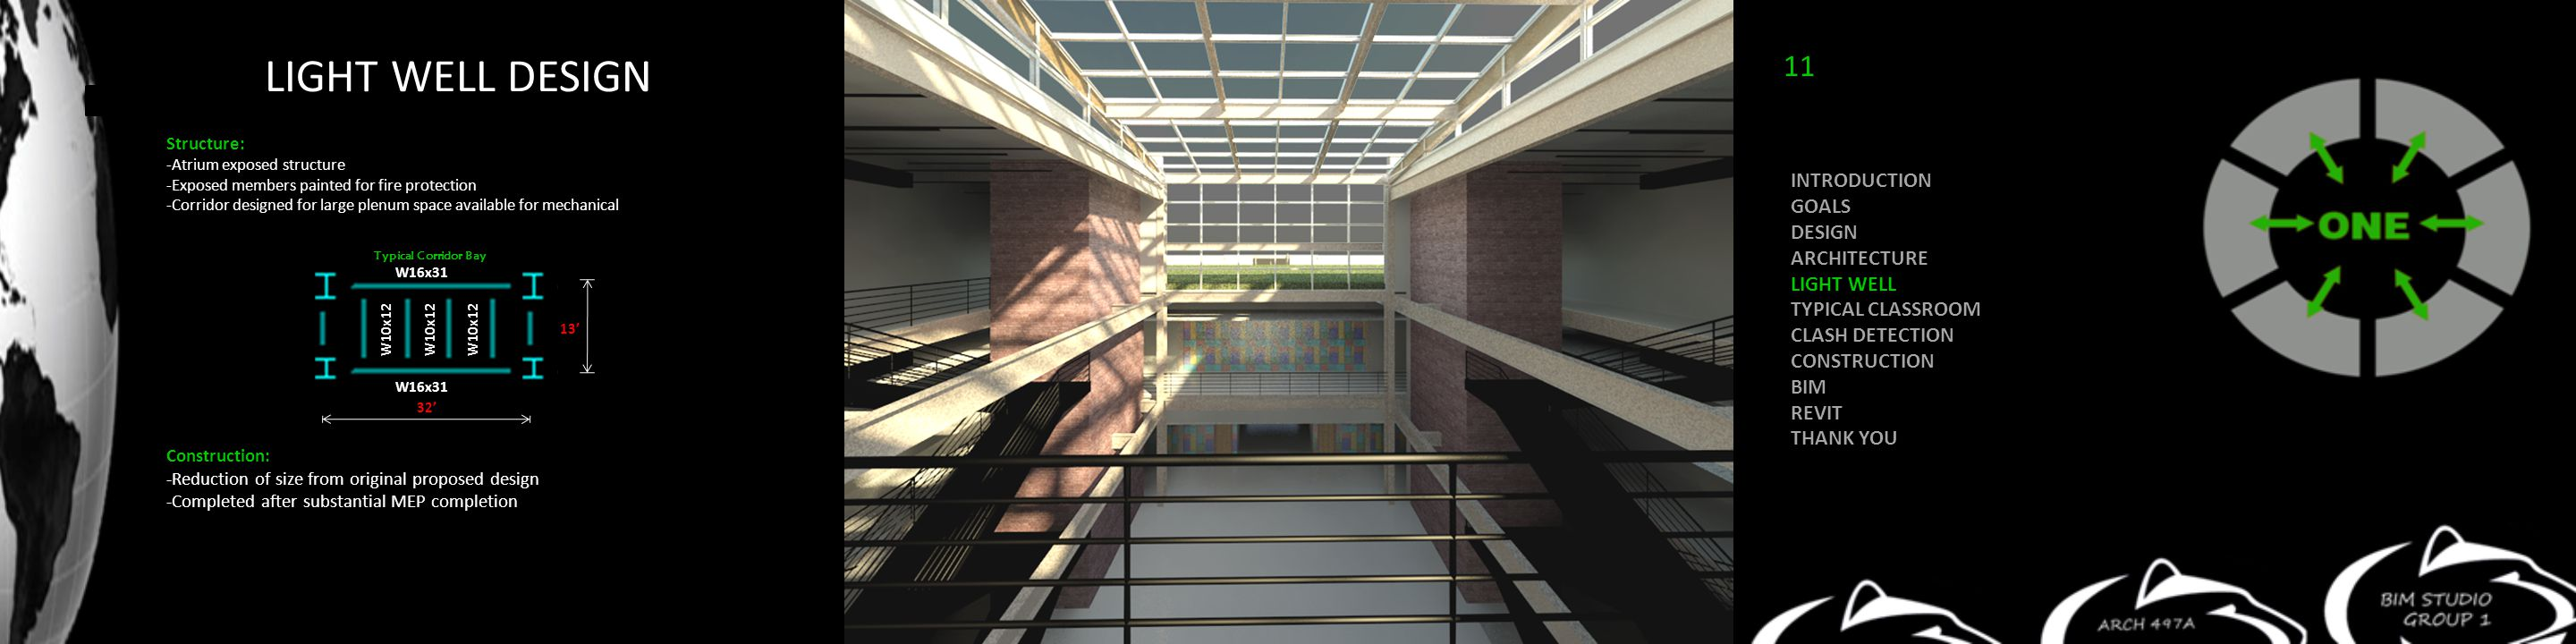 LIGHT WELL DESIGN Structure: -Atrium exposed structure -Exposed members painted for fire protection -Corridor designed for large plenum space available for mechanical Construction: -Reduction of size from original proposed design -Completed after substantial MEP completion Typical Corridor Bay W16x31 W10x12 32' 13' W10x12 INTRODUCTION GOALS DESIGN ARCHITECTURE LIGHT WELL TYPICAL CLASSROOM CLASH DETECTION CONSTRUCTION BIM REVIT THANK YOU 11